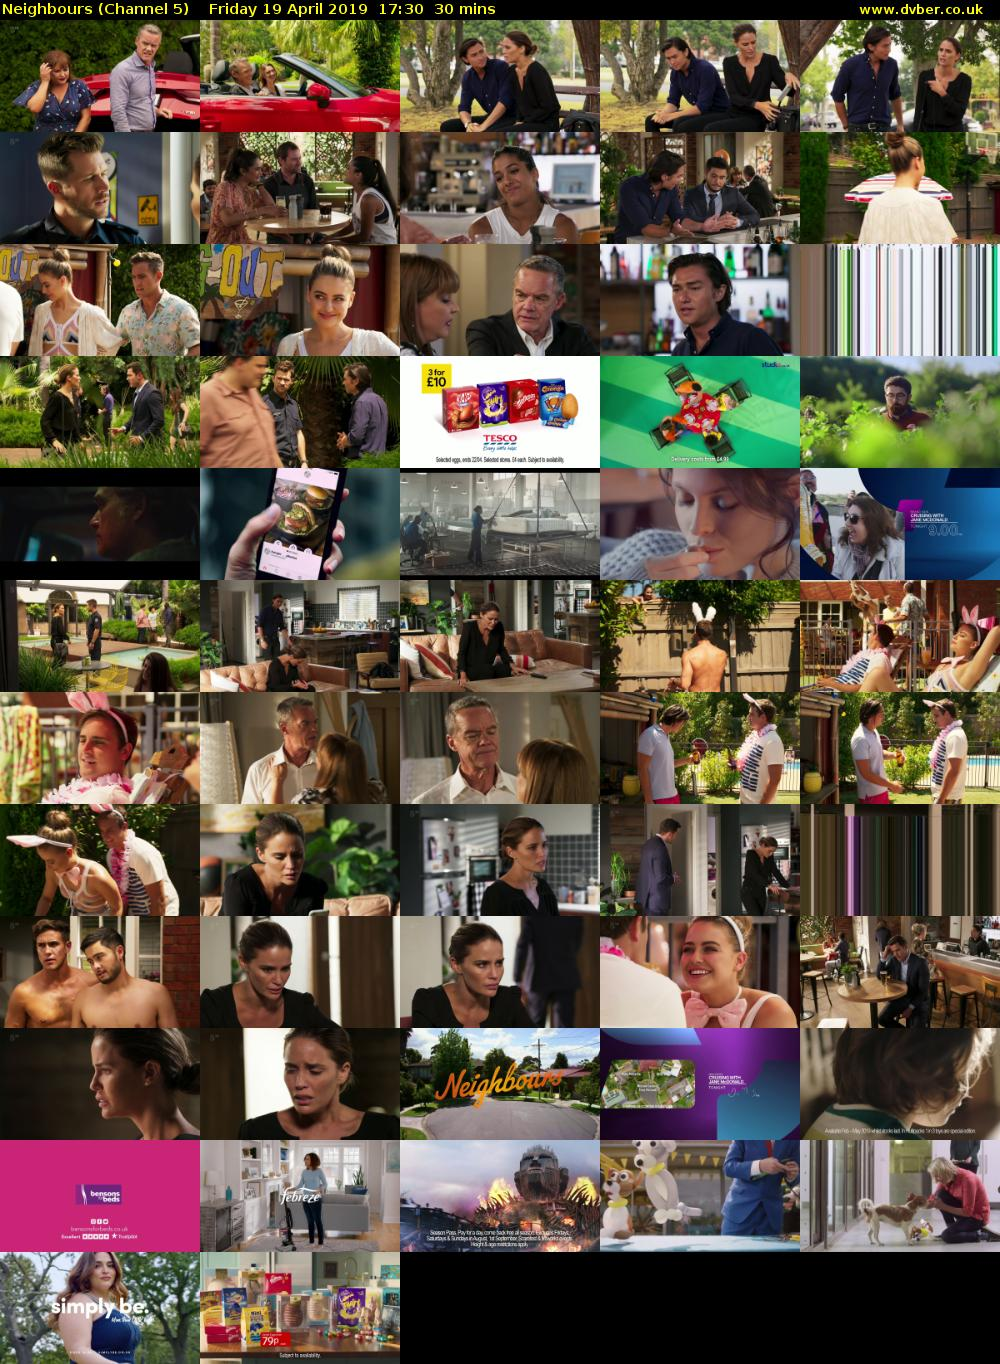 Neighbours (Channel 5) Friday 19 April 2019 17:30 - 18:00